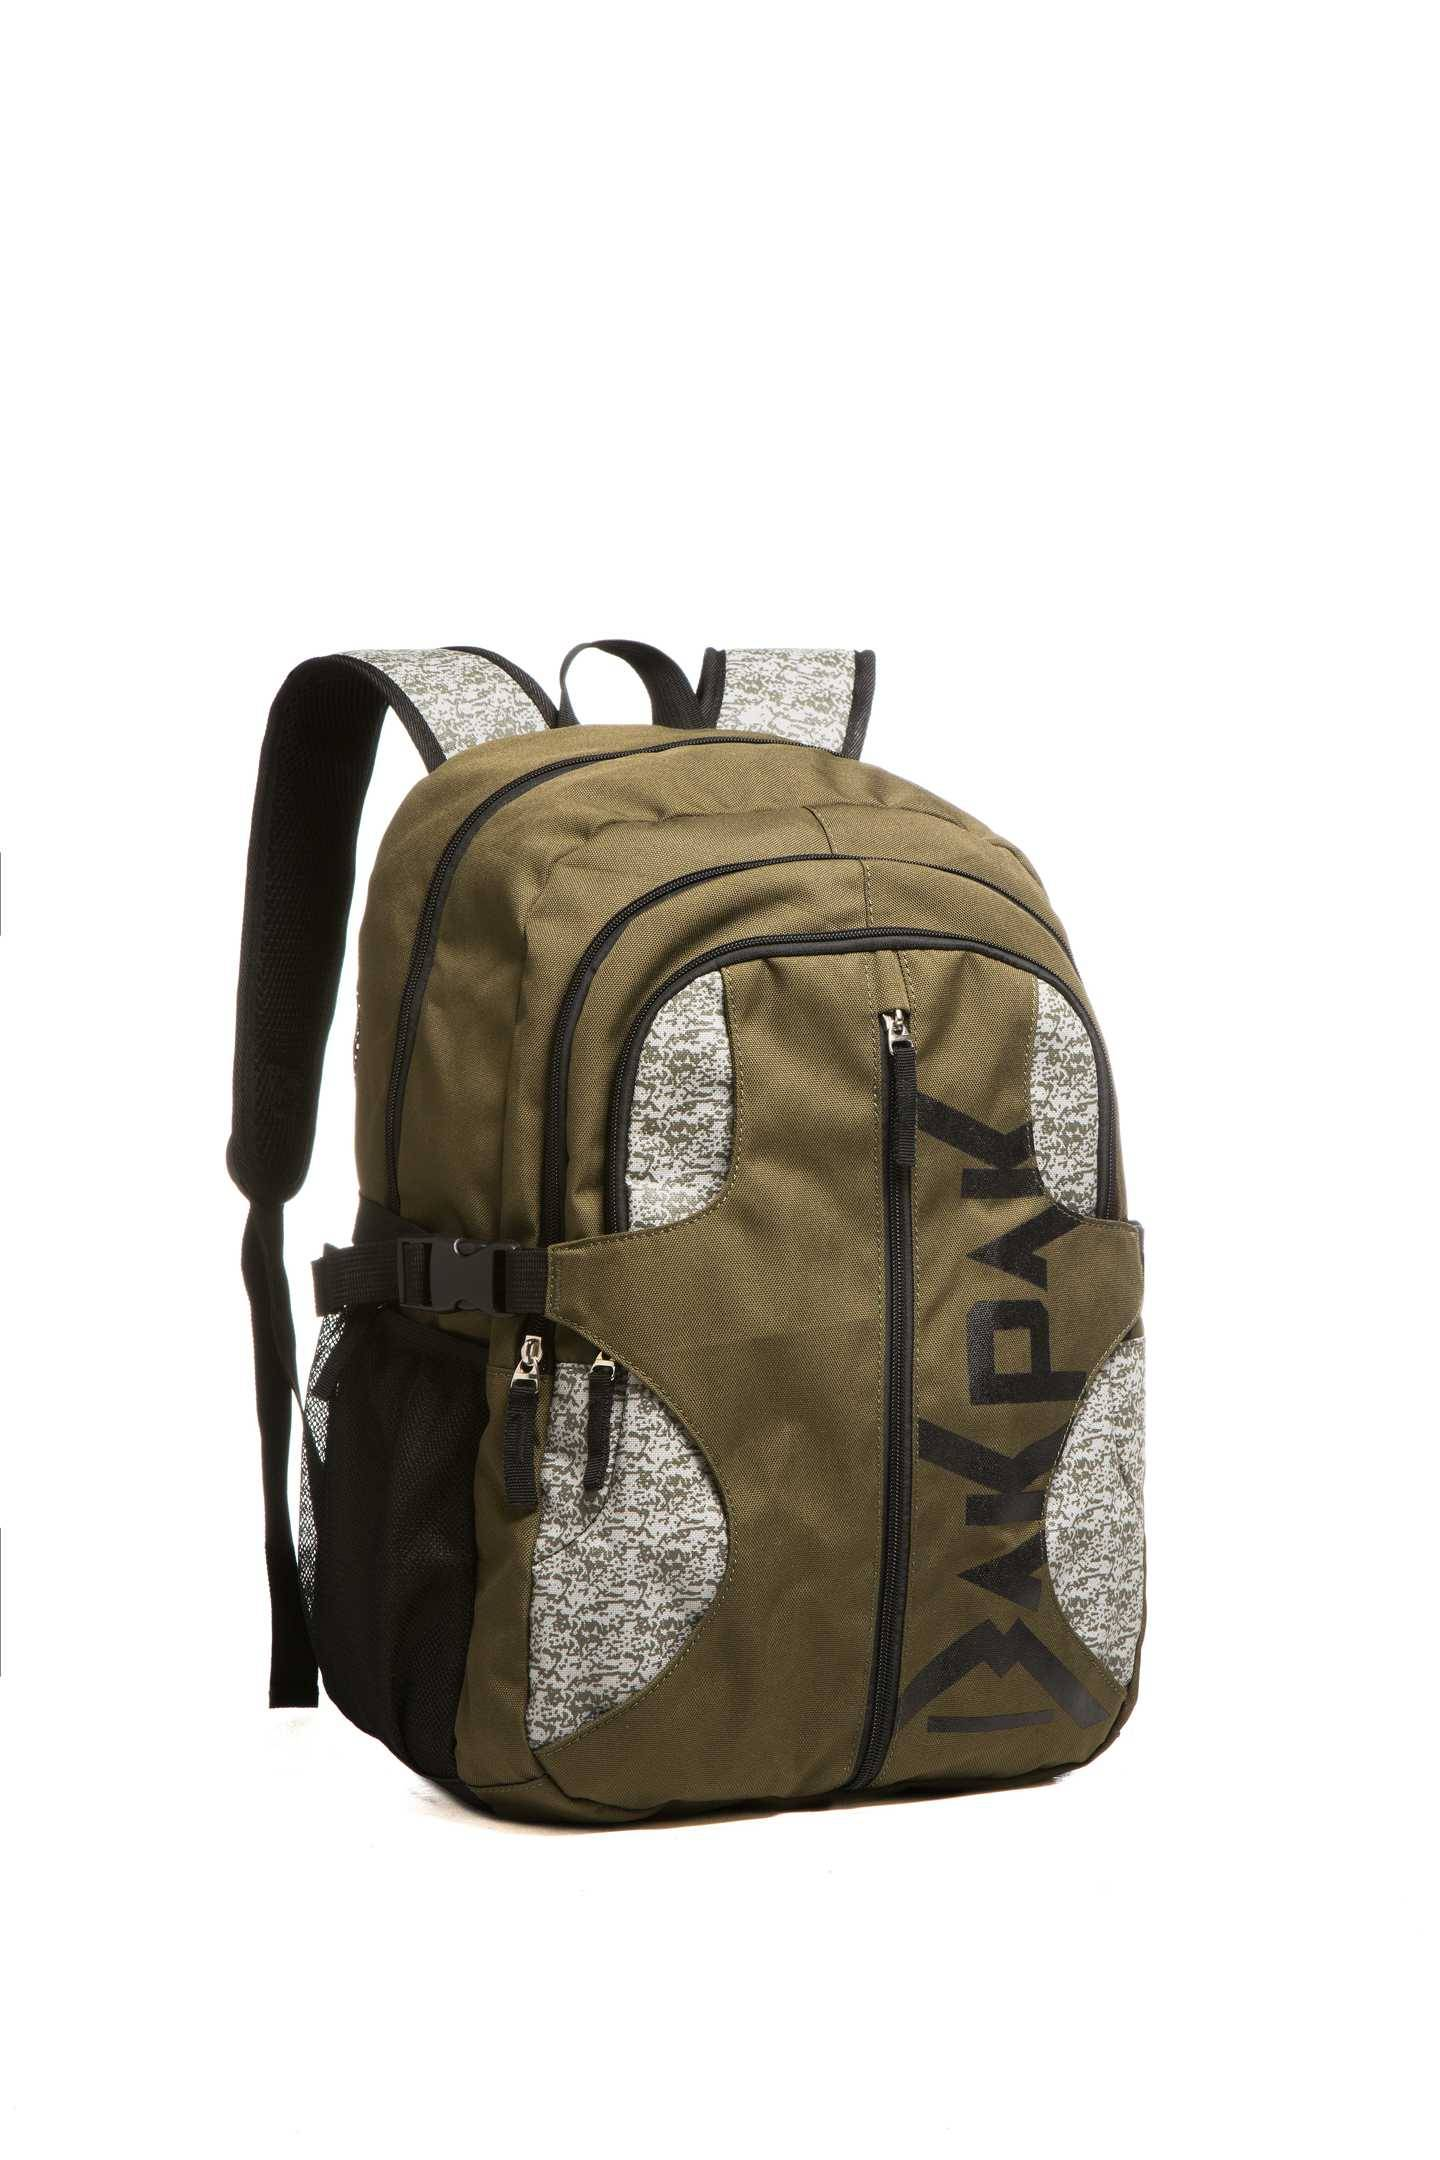 wholesale custom hiking backpack ,climbing backpack,sports backpack with a padded sleeve for laptops